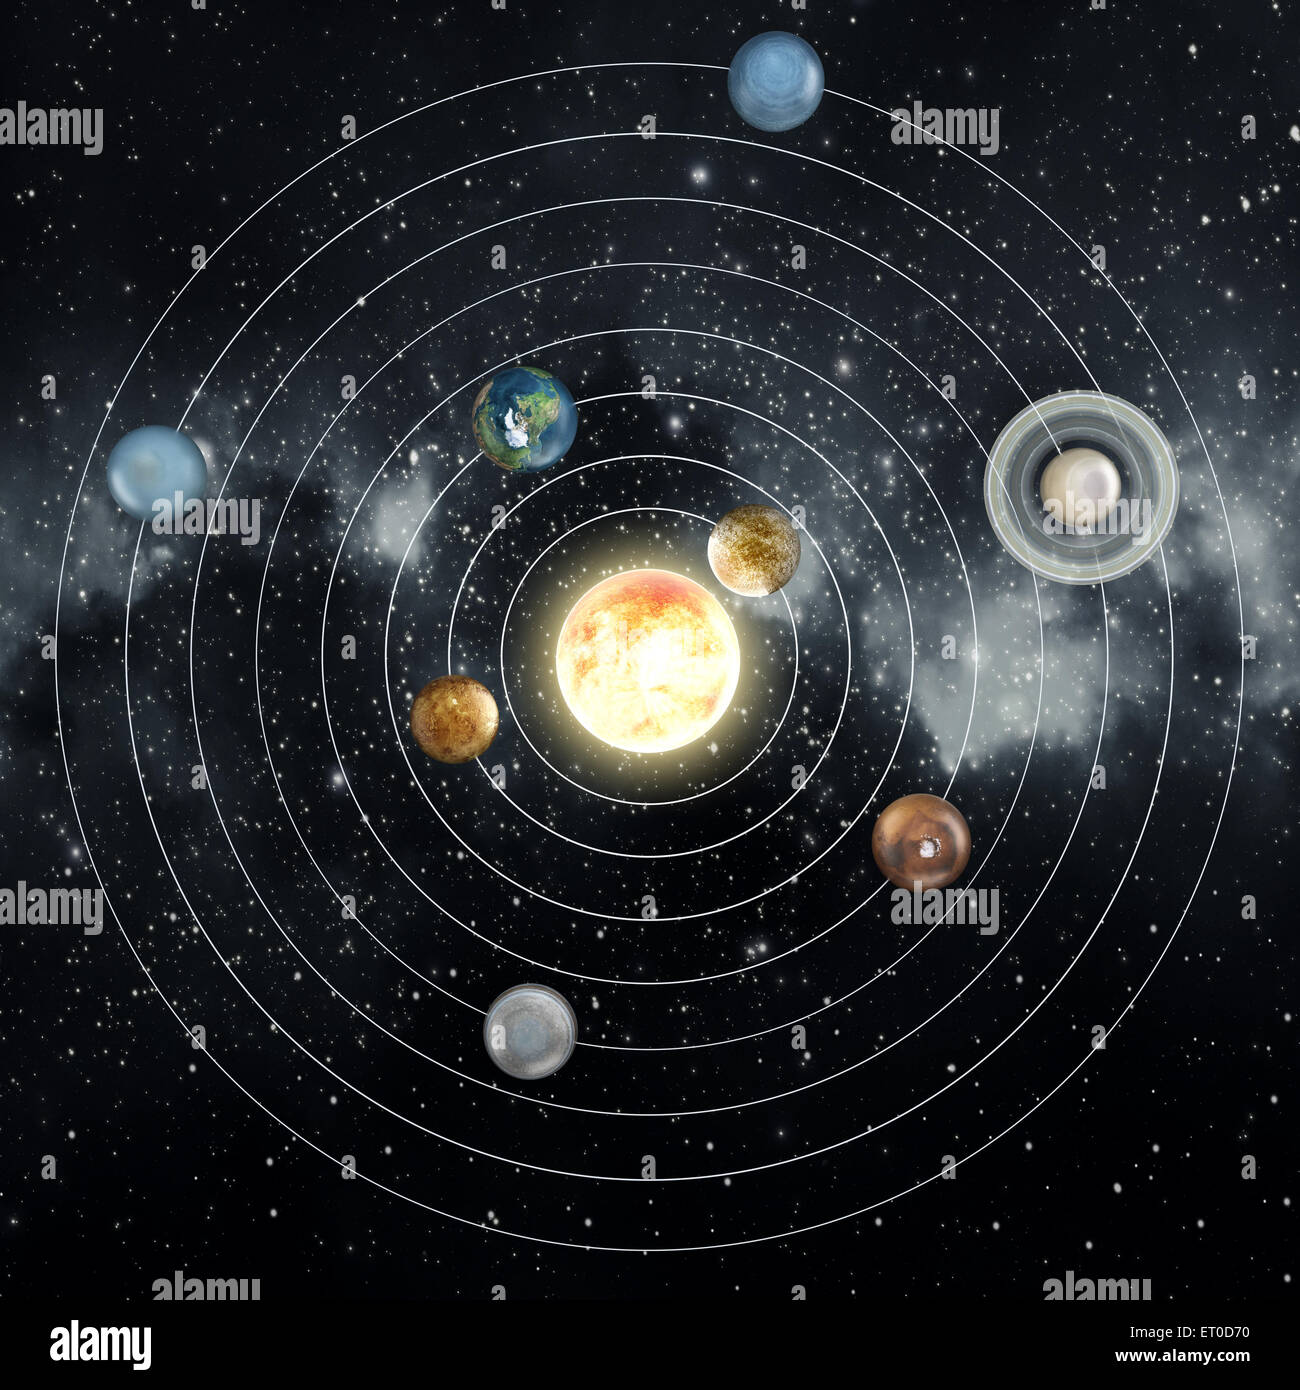 Solar System Diagram In The Space Stock Photo